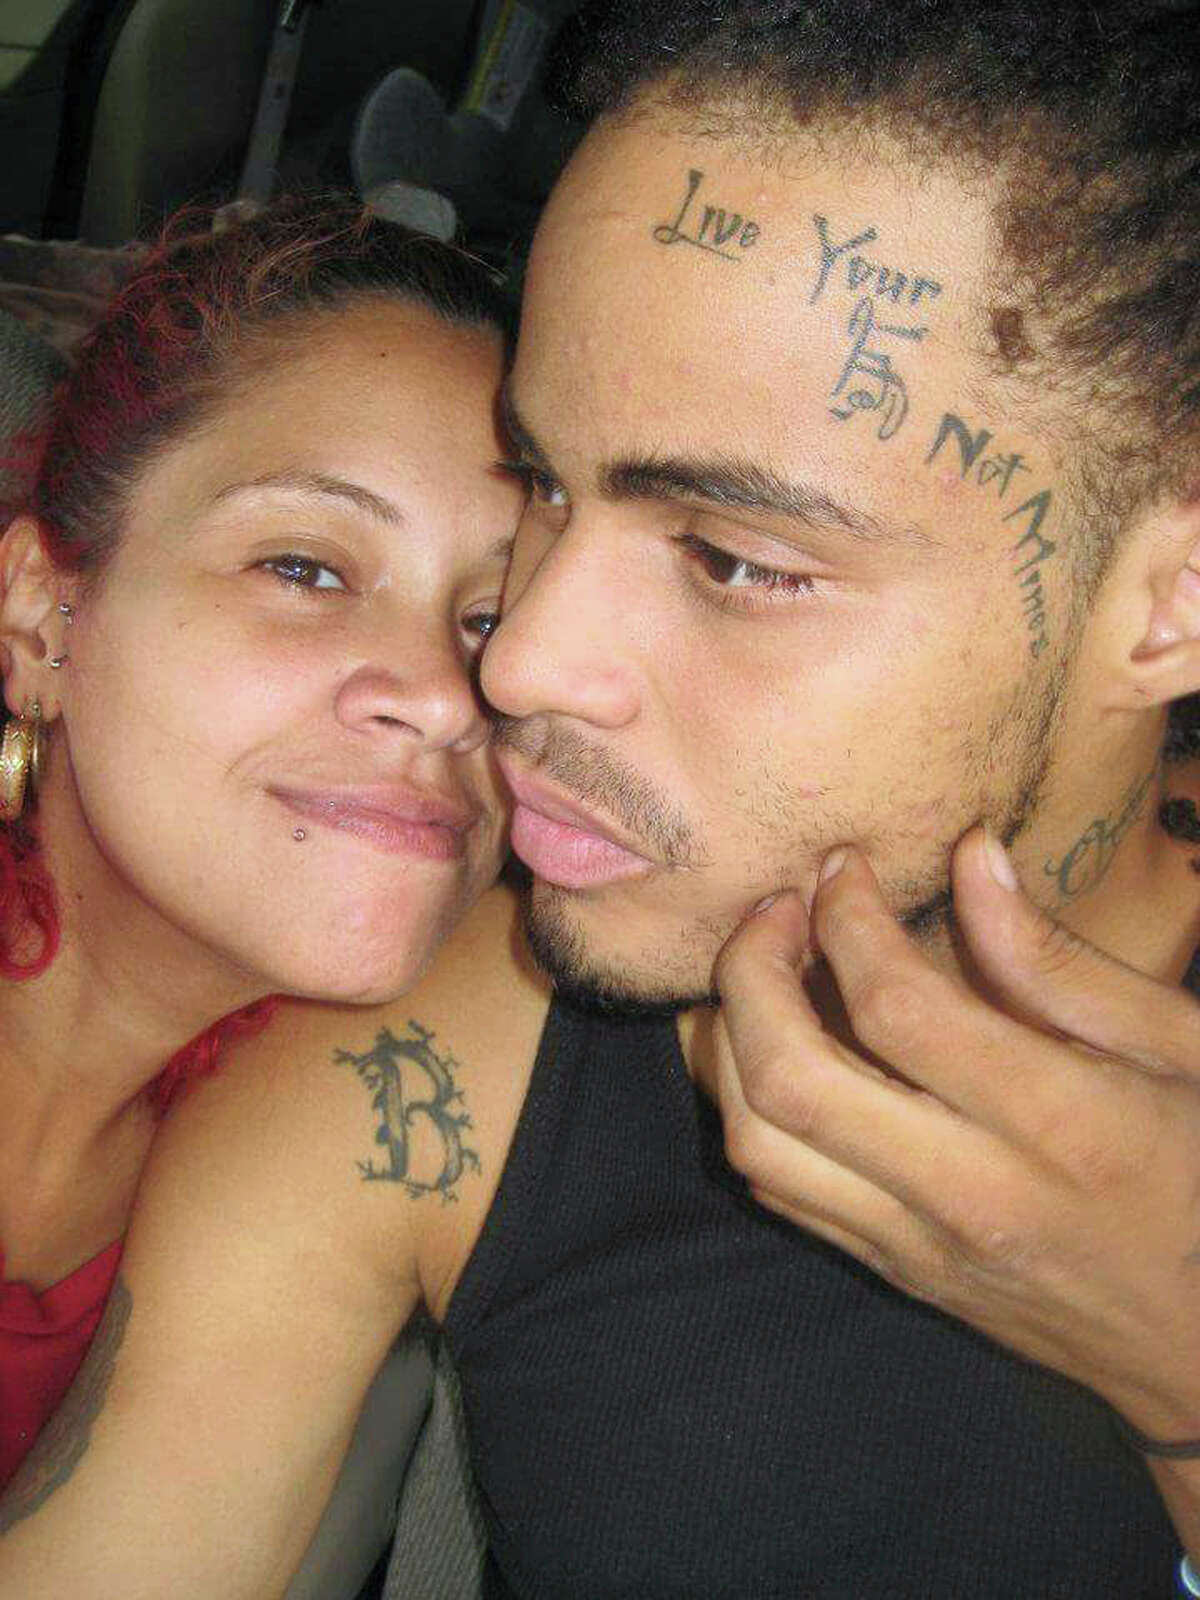 In this undated photo provided by Angelique Negroni-Kearse, Negroni-Kearse poses for a selfie with her husband, Andrew Kearse. Andrew Kearse died on May 11, 2017 after leading Schenectady, N.Y., police on a foot chase when stopped for a traffic violation. He complained of dizziness and difficulty breathing before losing consciousness while in police custody. (Angelique Negroni-Kearse via AP) ORG XMIT: NYR401